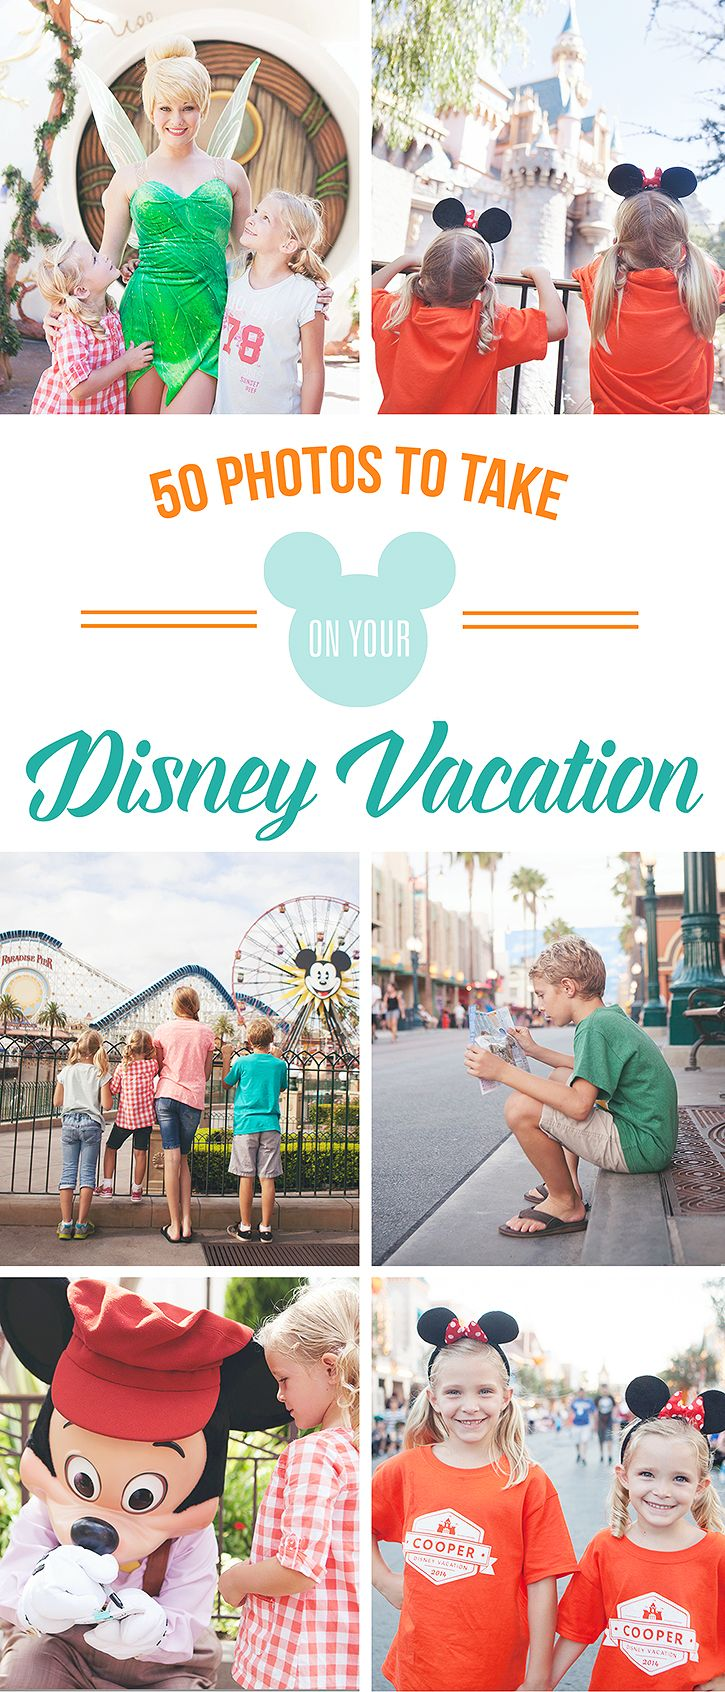 50 Photo suggestions to capture the magic of YOUR Disney Vacation - Free Printable Photo Checklist